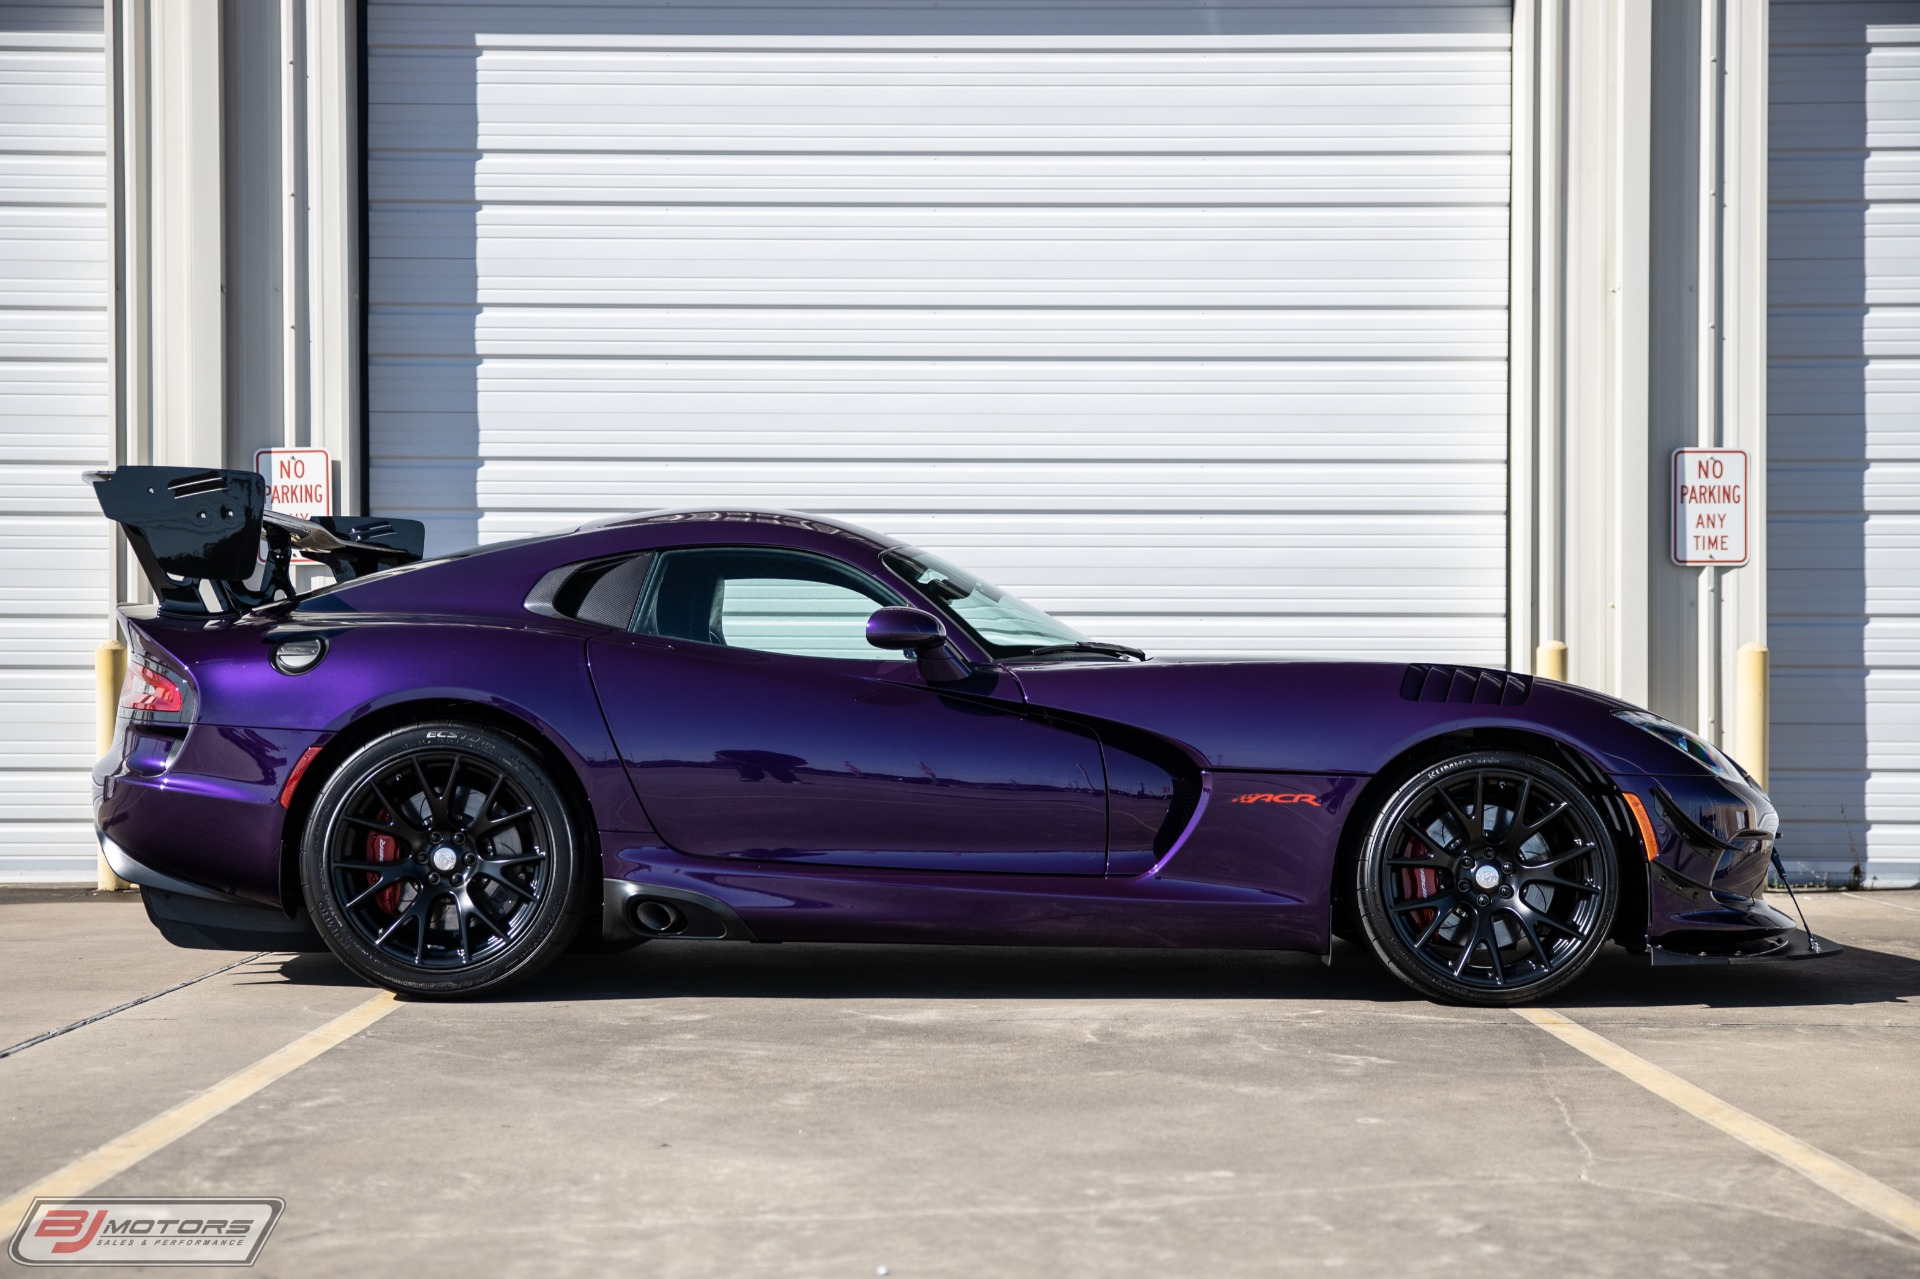 Used-2016-Dodge-Viper-GTC-Extreme-ACR-1-of-1